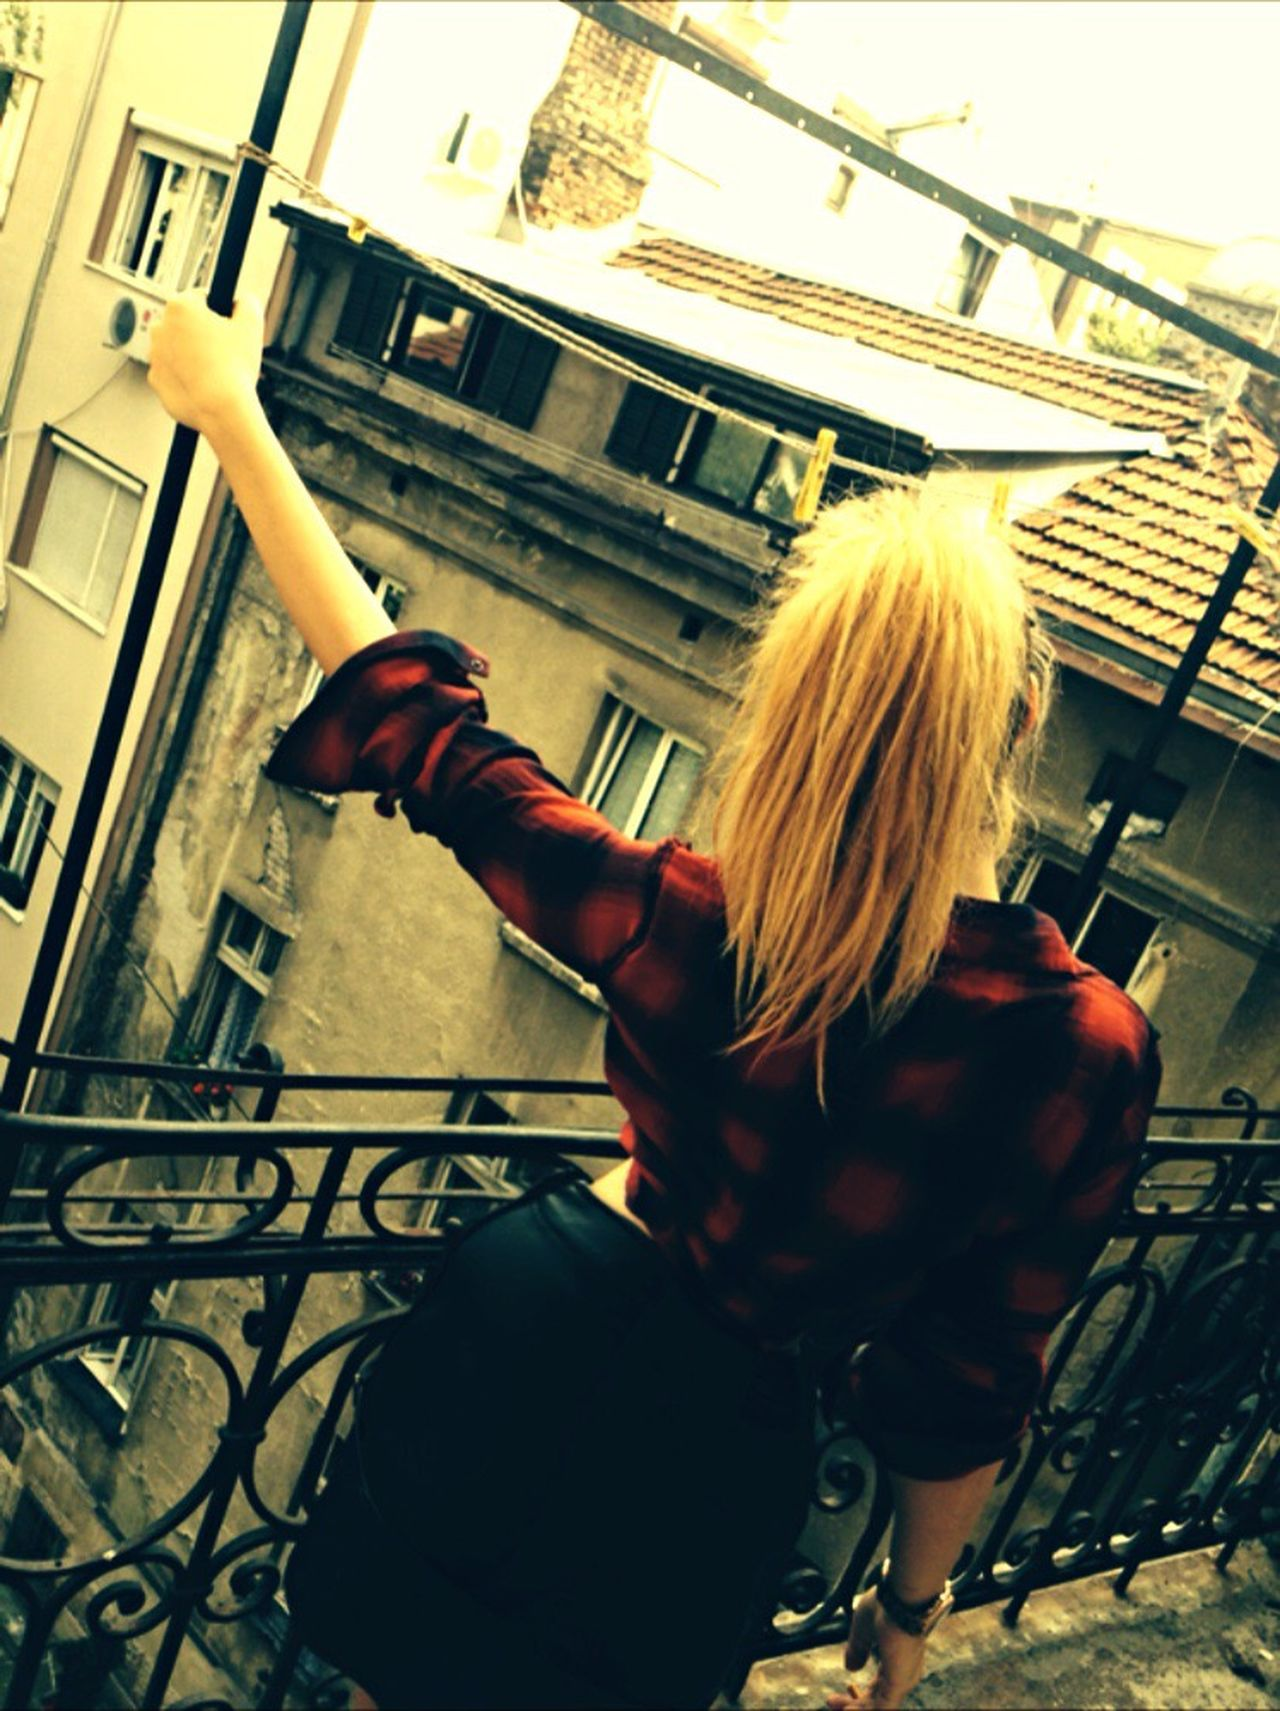 Blonde Girl Blondedays Me Terrace Art Vintage Blond Hair Low Angle View Lifestyles Young Adult Women One Person Social Issues Built Structure Young Women Architecture Indoors  One Young Woman Only Only Women Adult People Adults Only Day Teen